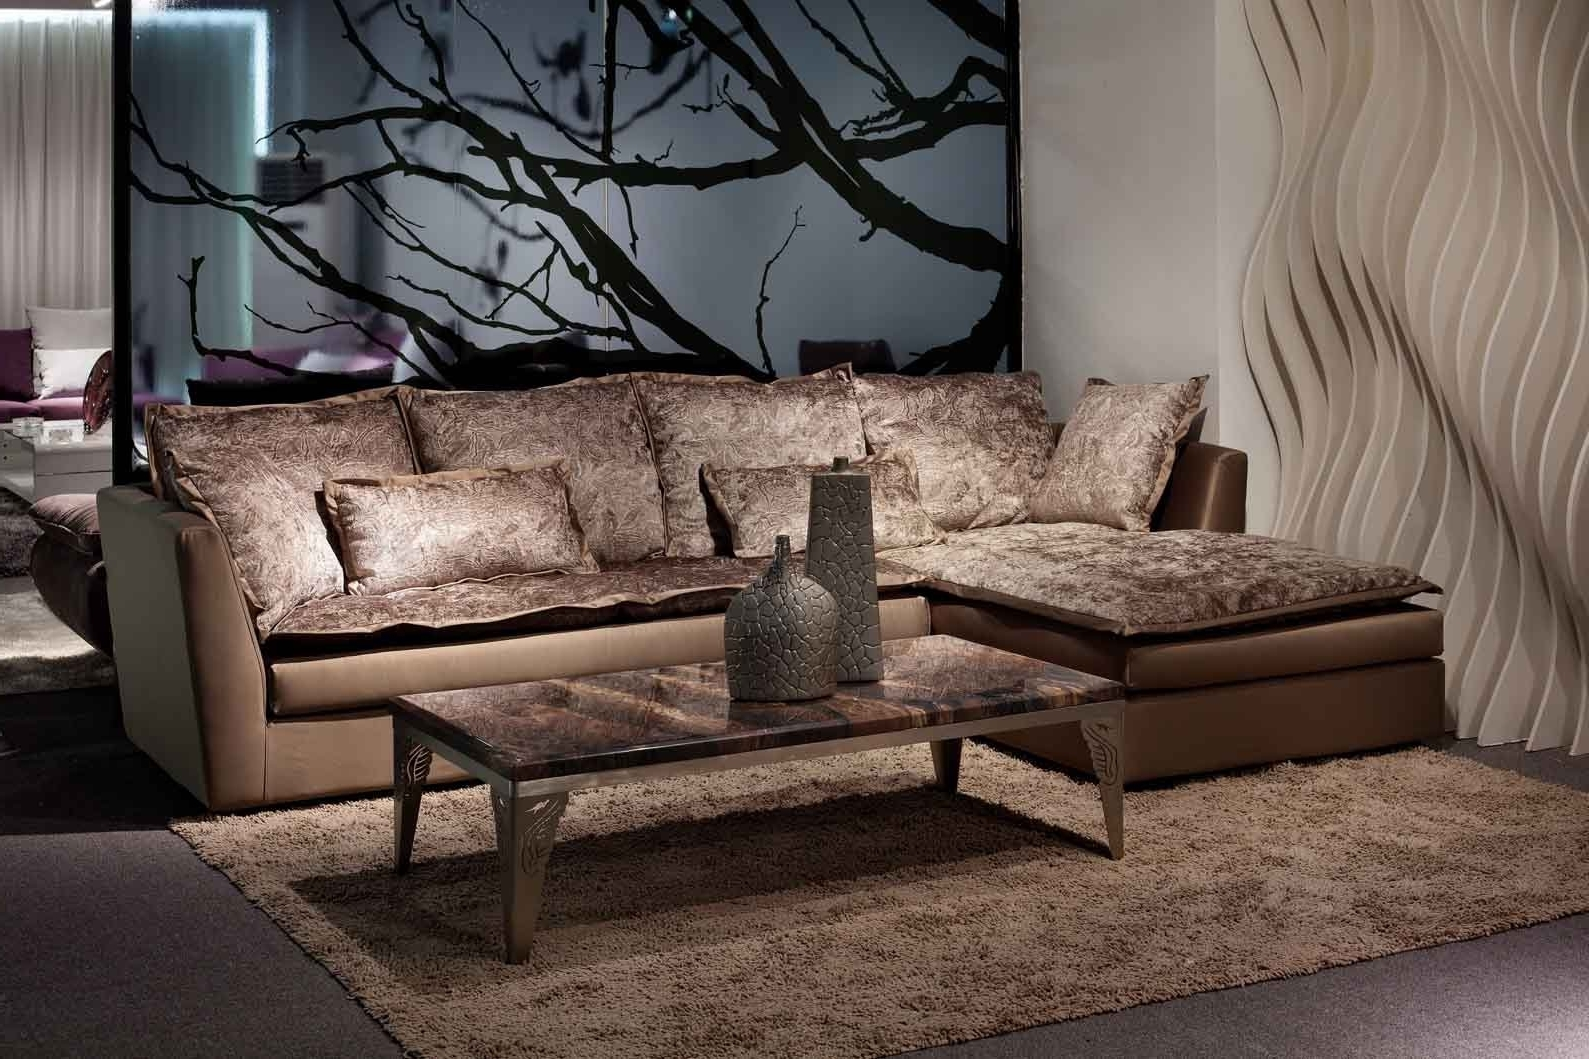 2018 Couch: Astounding Deals On Couches Best Deal On Couches, Overstock Pertaining To Sydney Sectional Sofas (View 11 of 20)